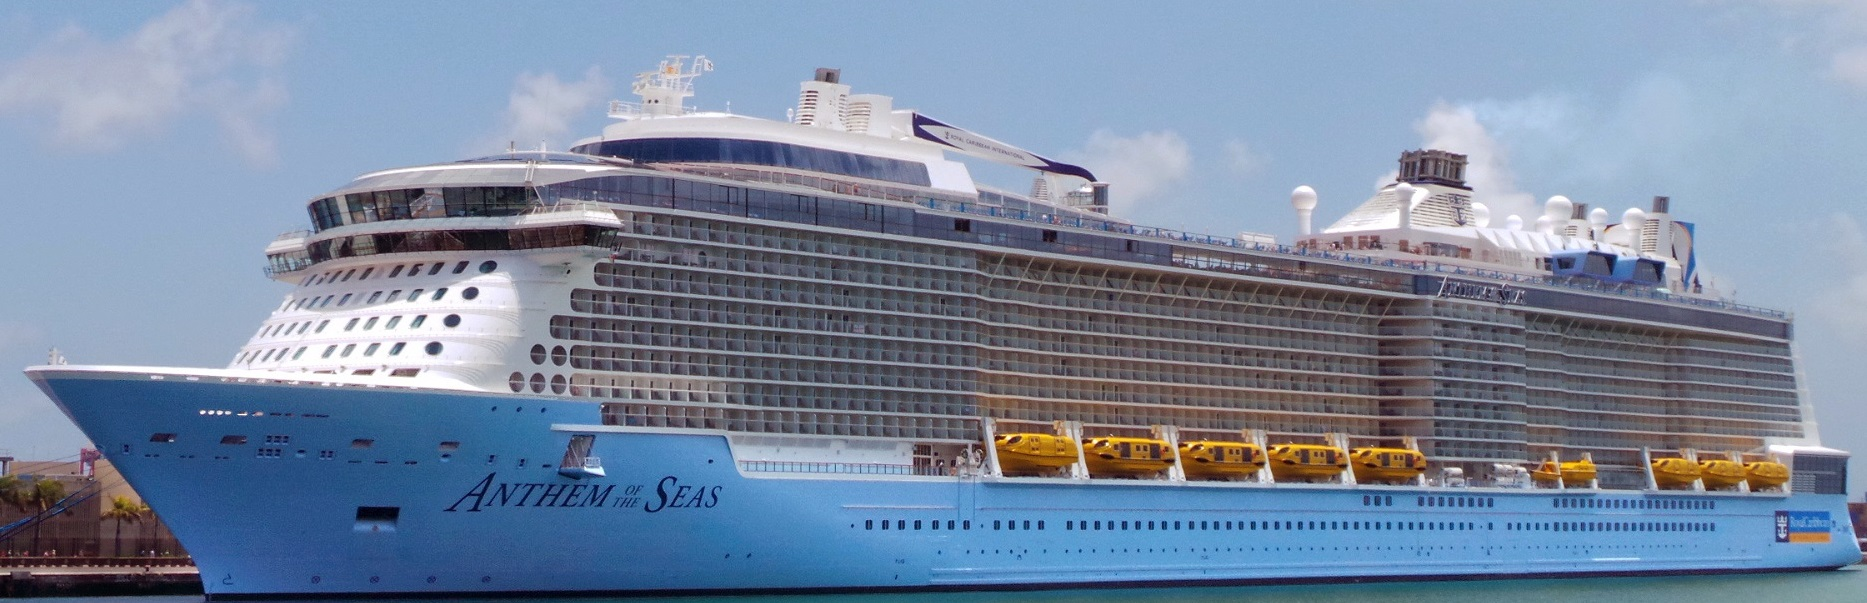 Anthem of the Seas cruise forced to turn back early after 130 fall ill